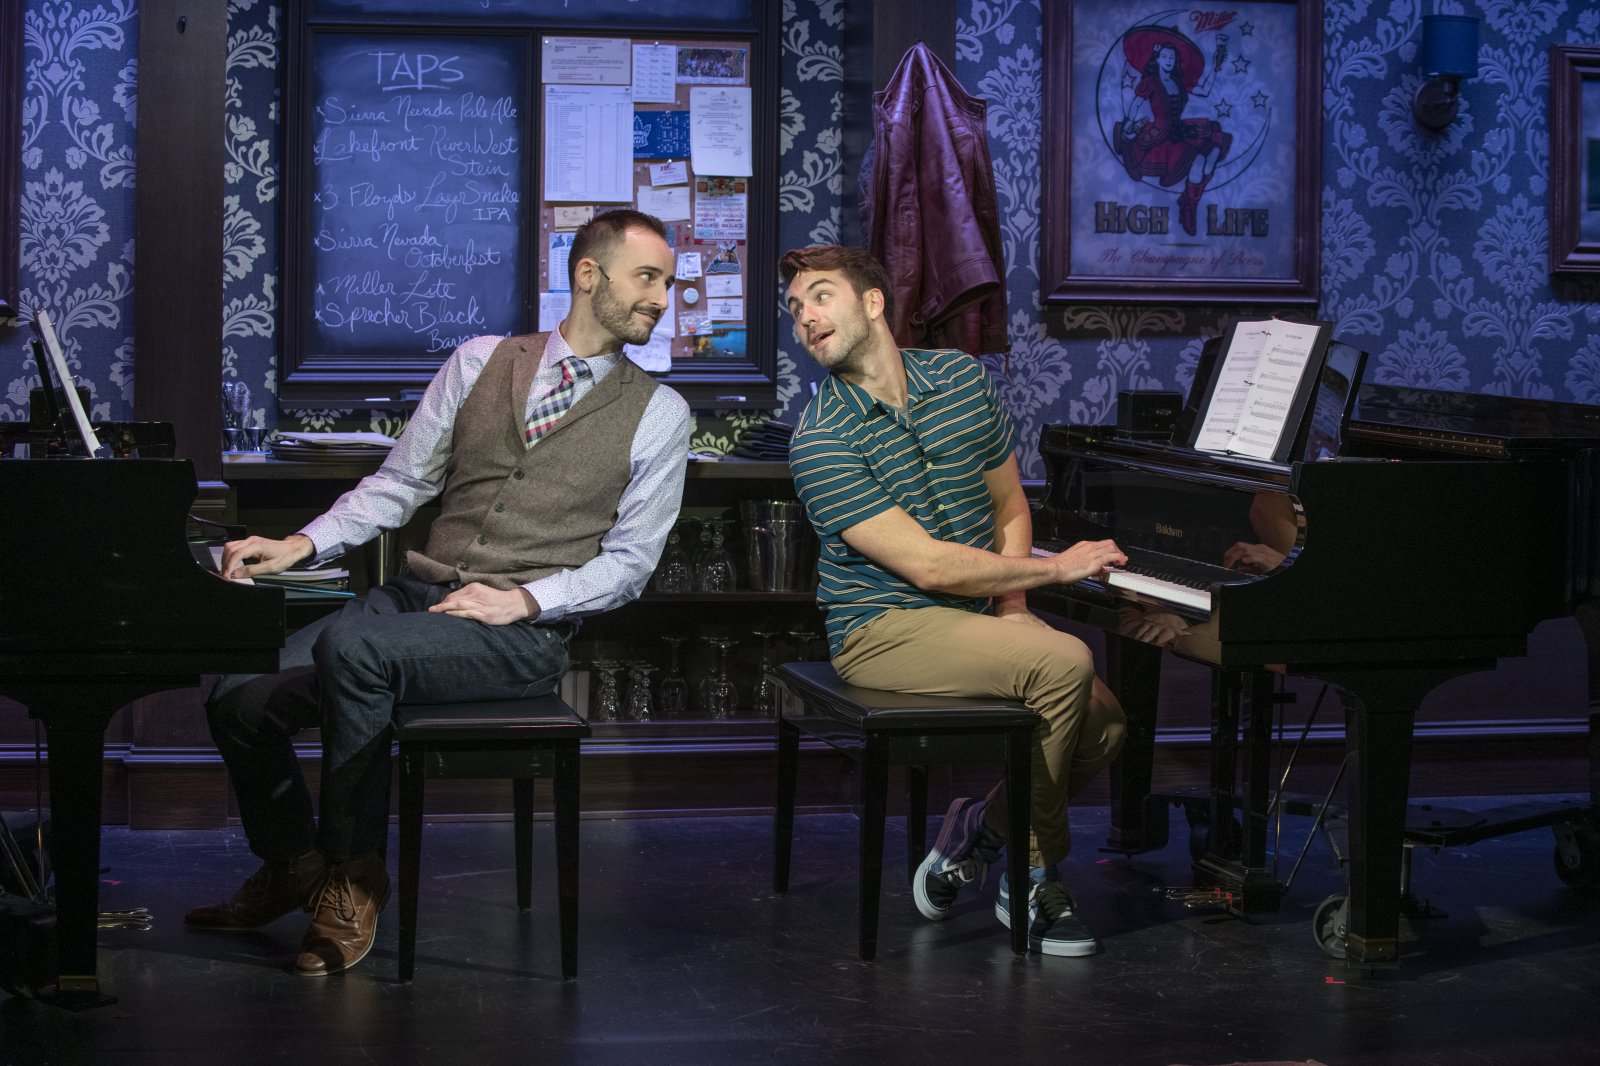 Milwaukee Repertory Theater presents 2 Pianos 4 Hands by Ted Dykstra and Richard Greenblatt in the Stackner Cabaret September 8 – November 3, 2019 featuring Joe Kinosian (left) and Ben Moss (right